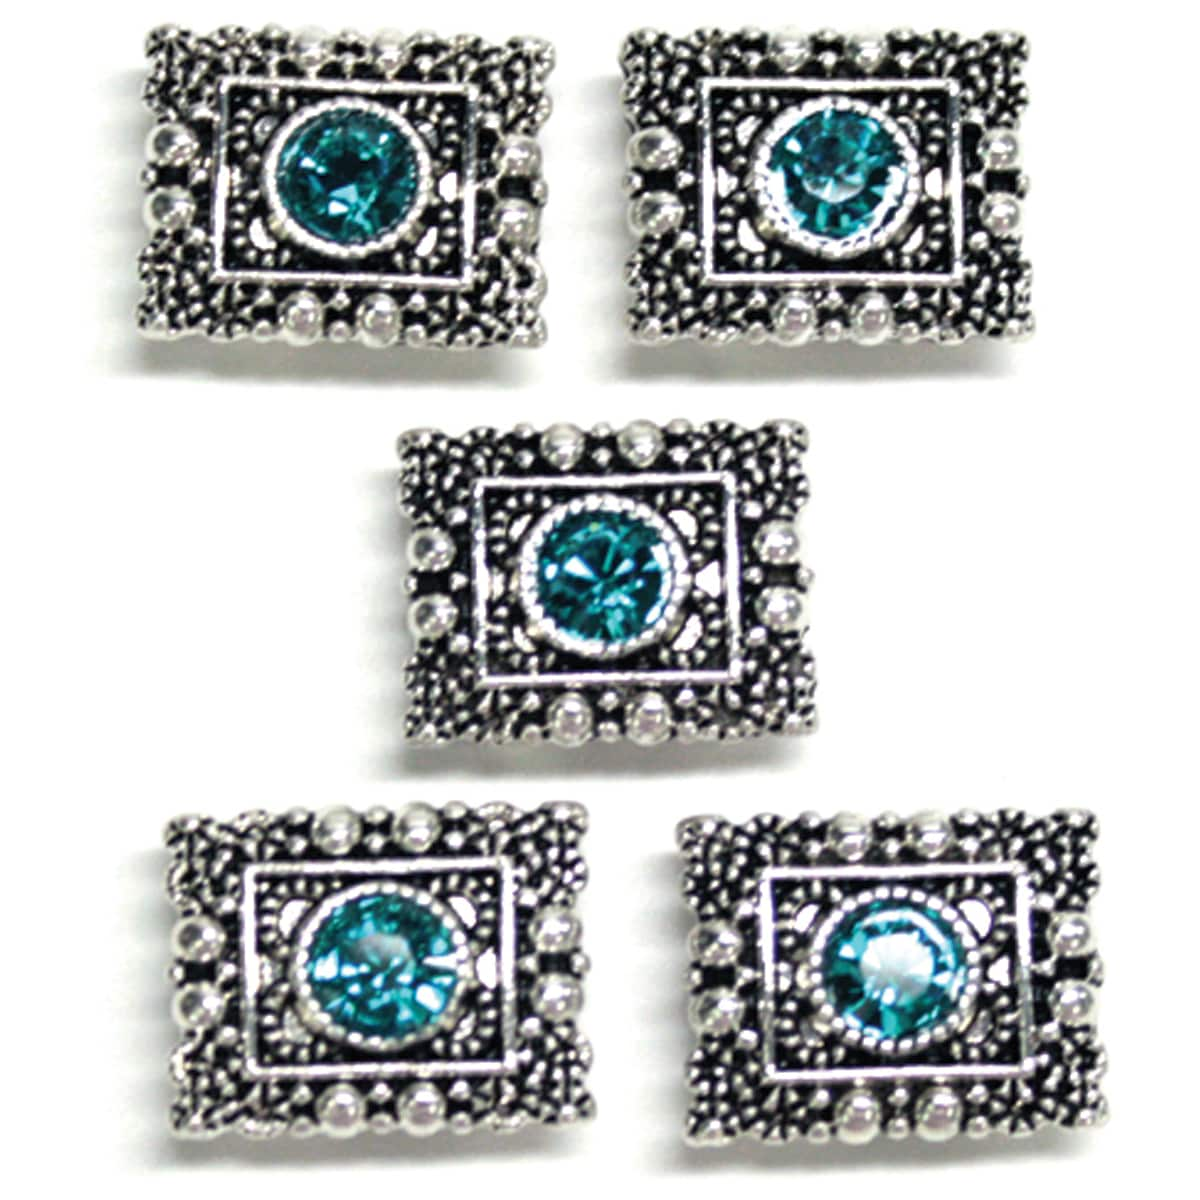 Jolee's Jewels Antique Silver/Turquoise  Elements Sliders (Set of 5)